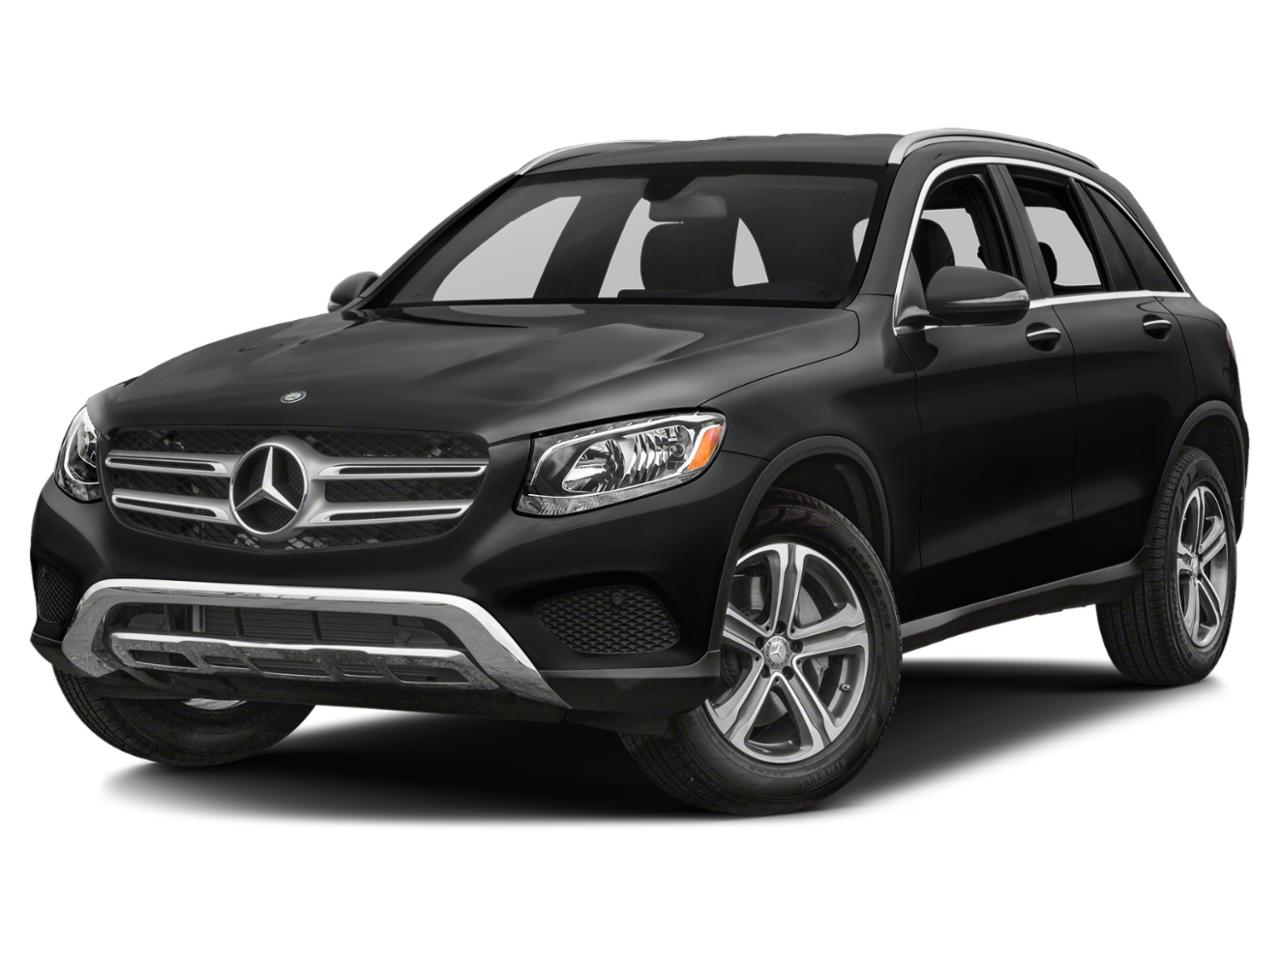 2018 Mercedes-Benz GLC Vehicle Photo in Flemington, NJ 08822